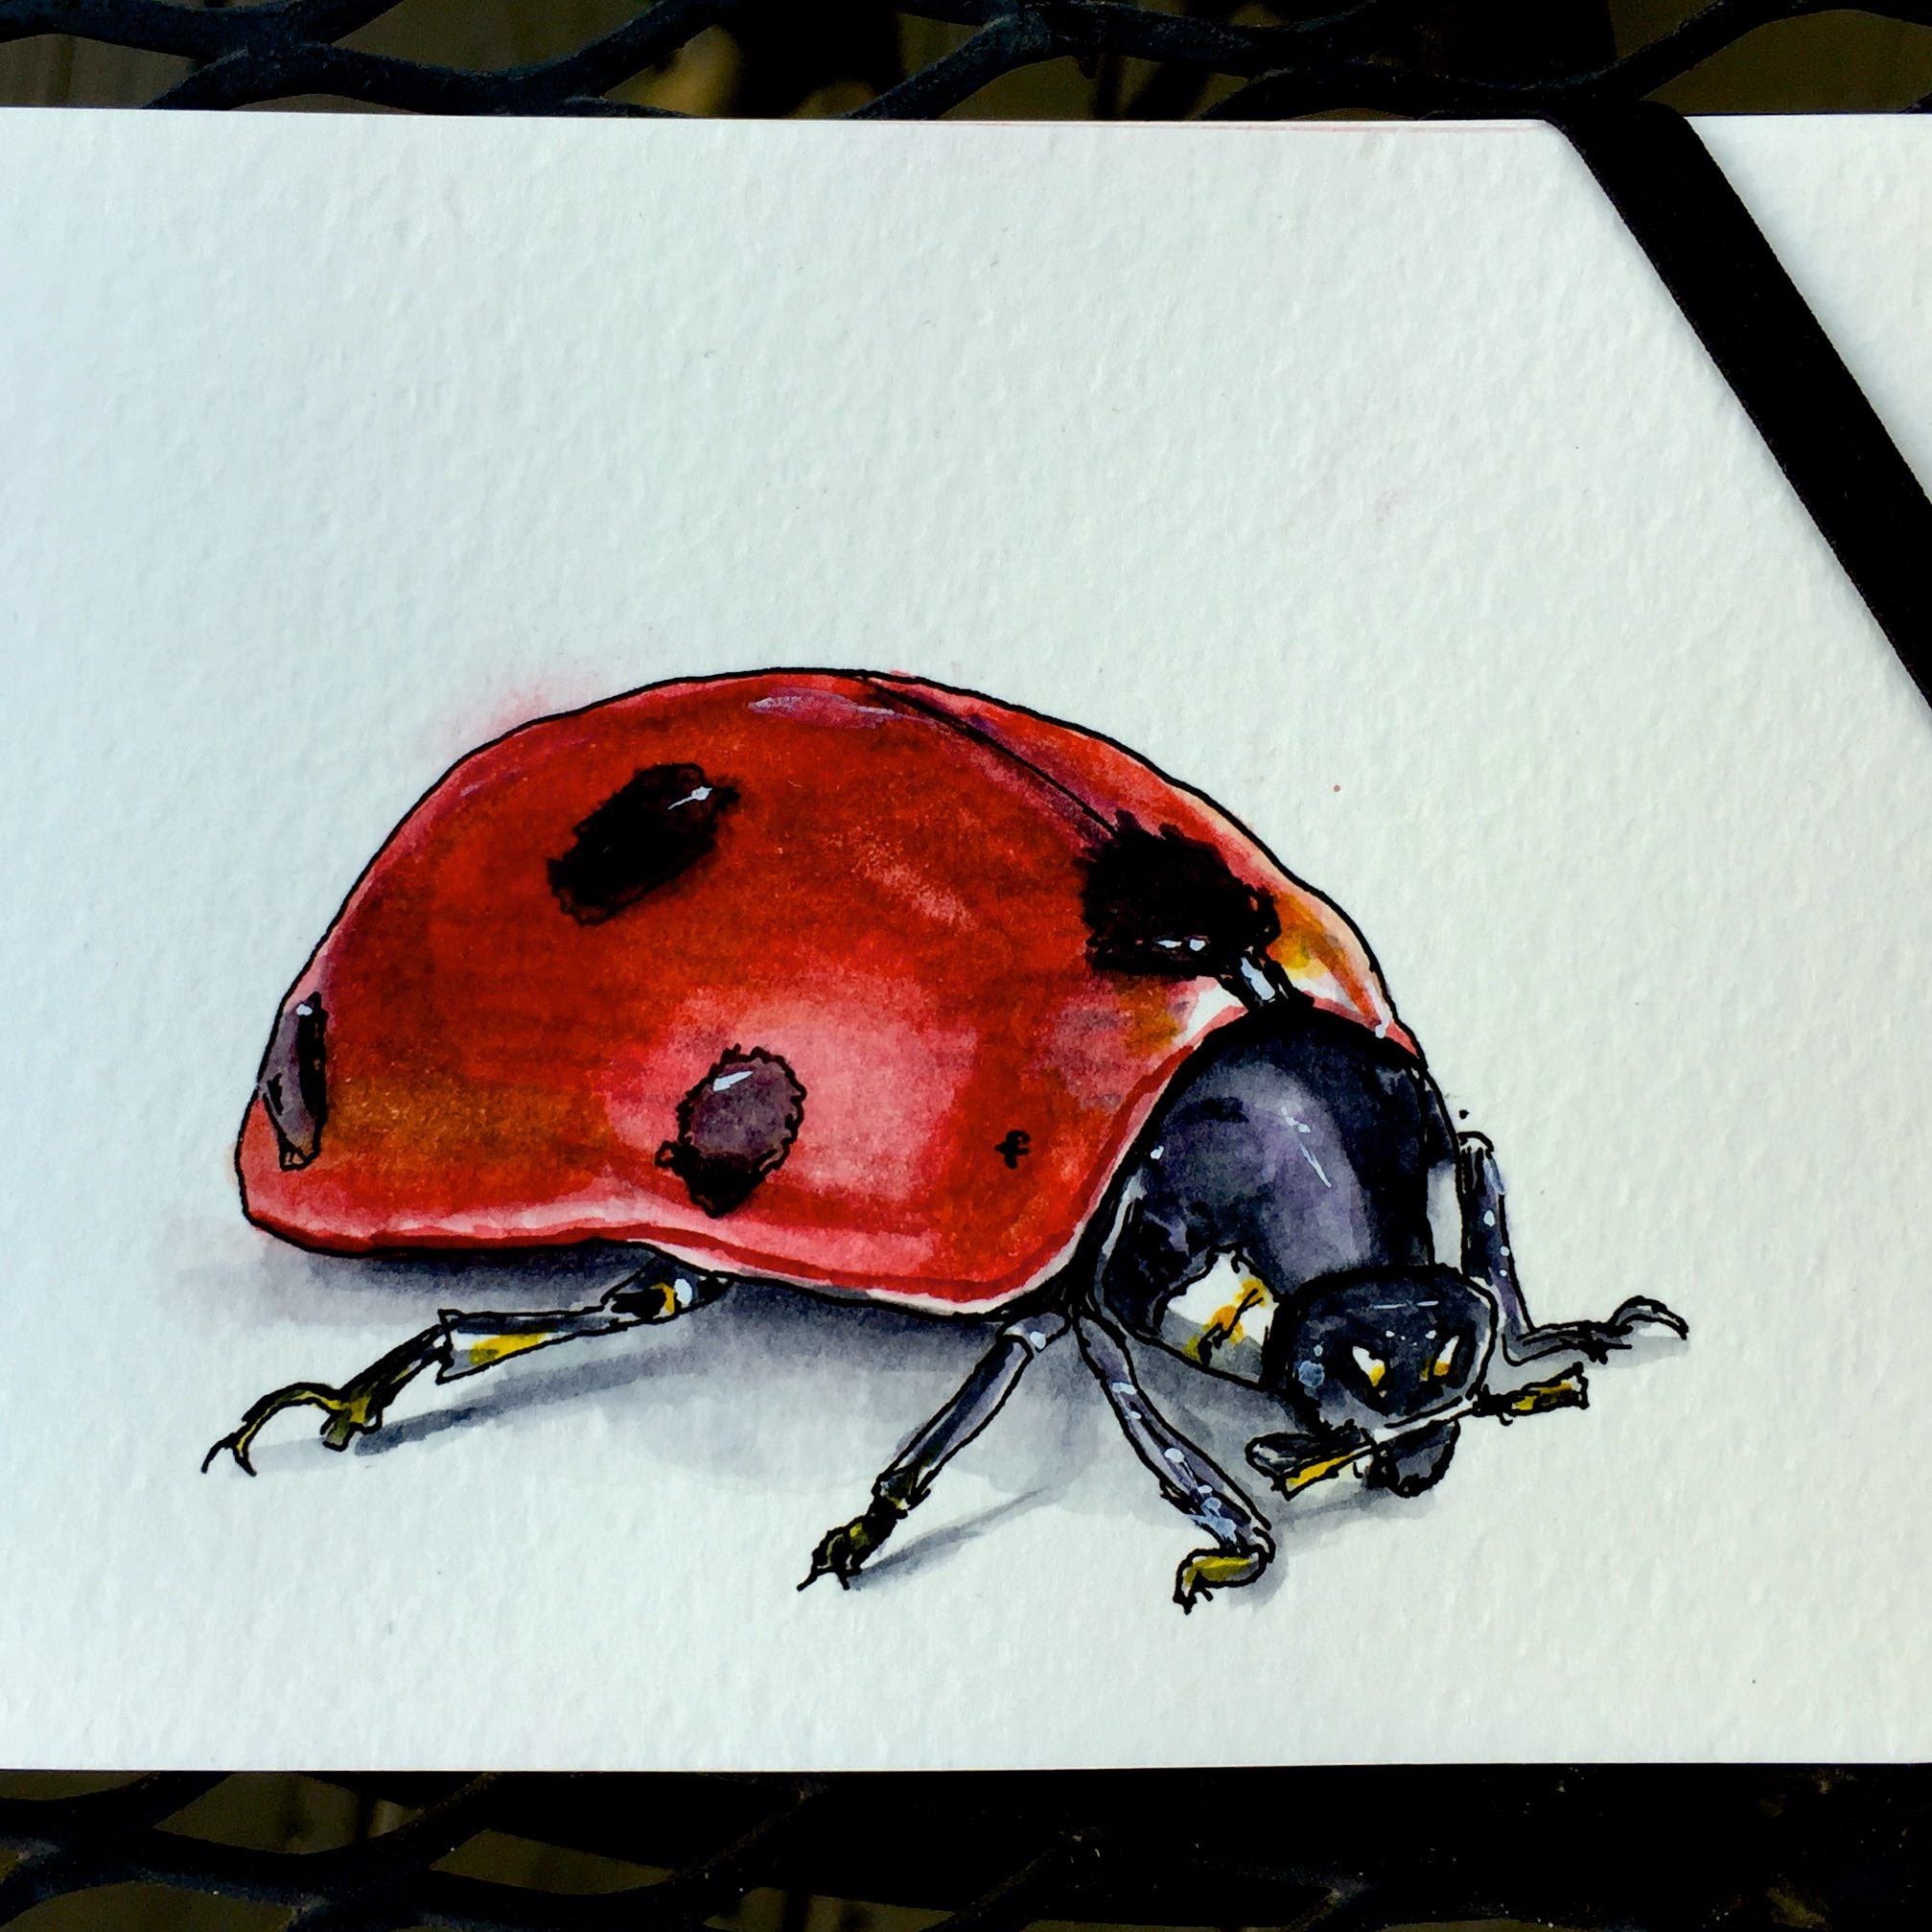 Giant Lady Beetle